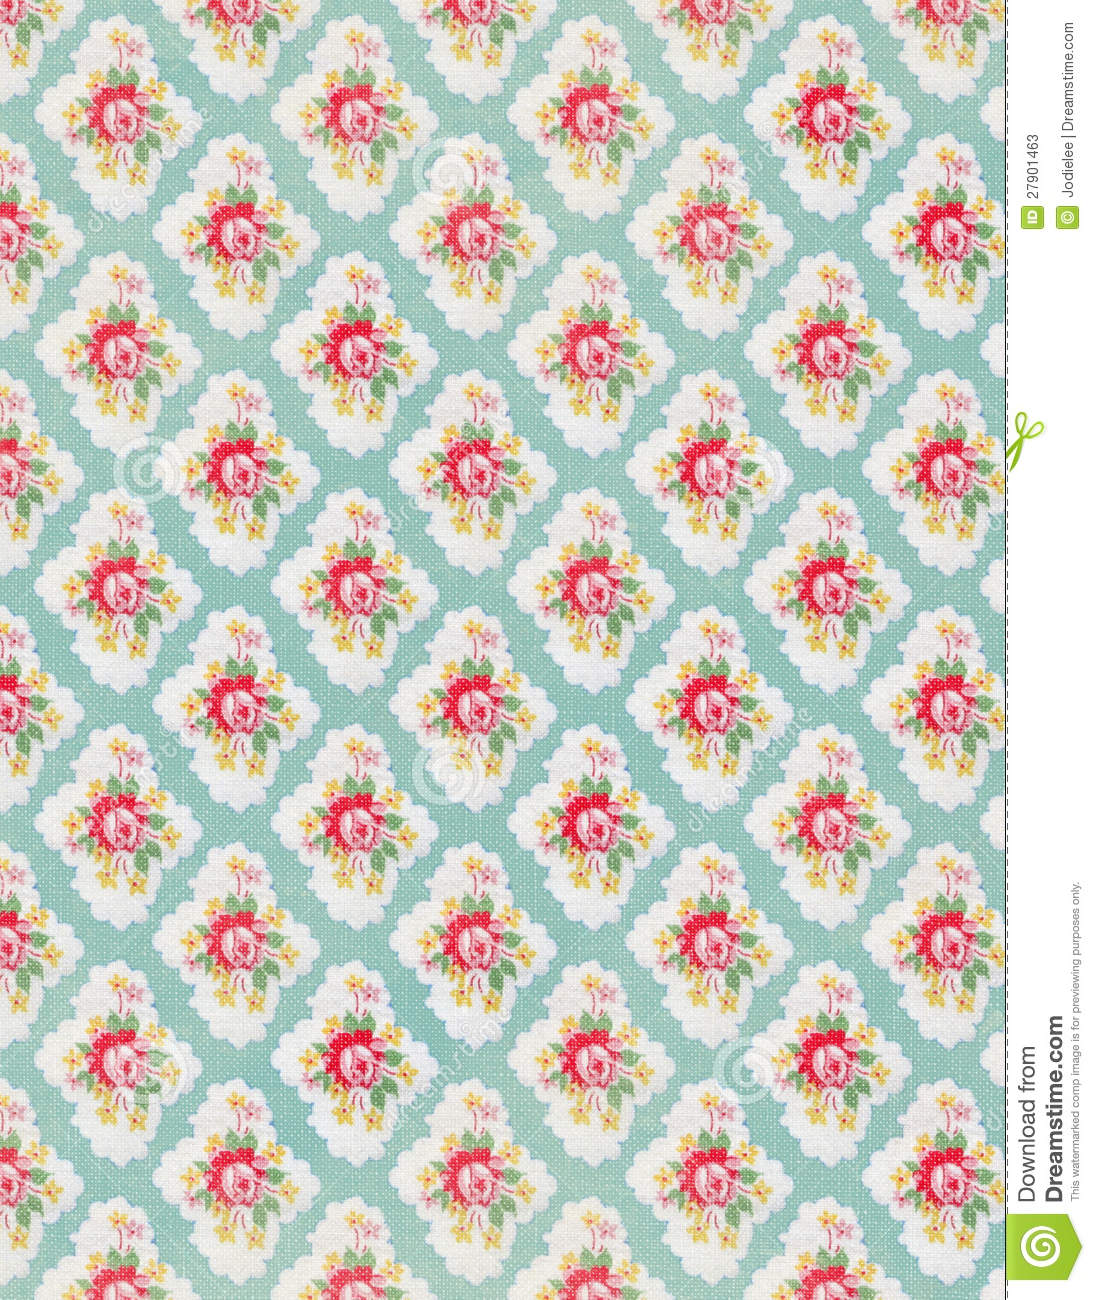 Free Download Vintage Floral Wallpaper Rose Repeat Pattern By